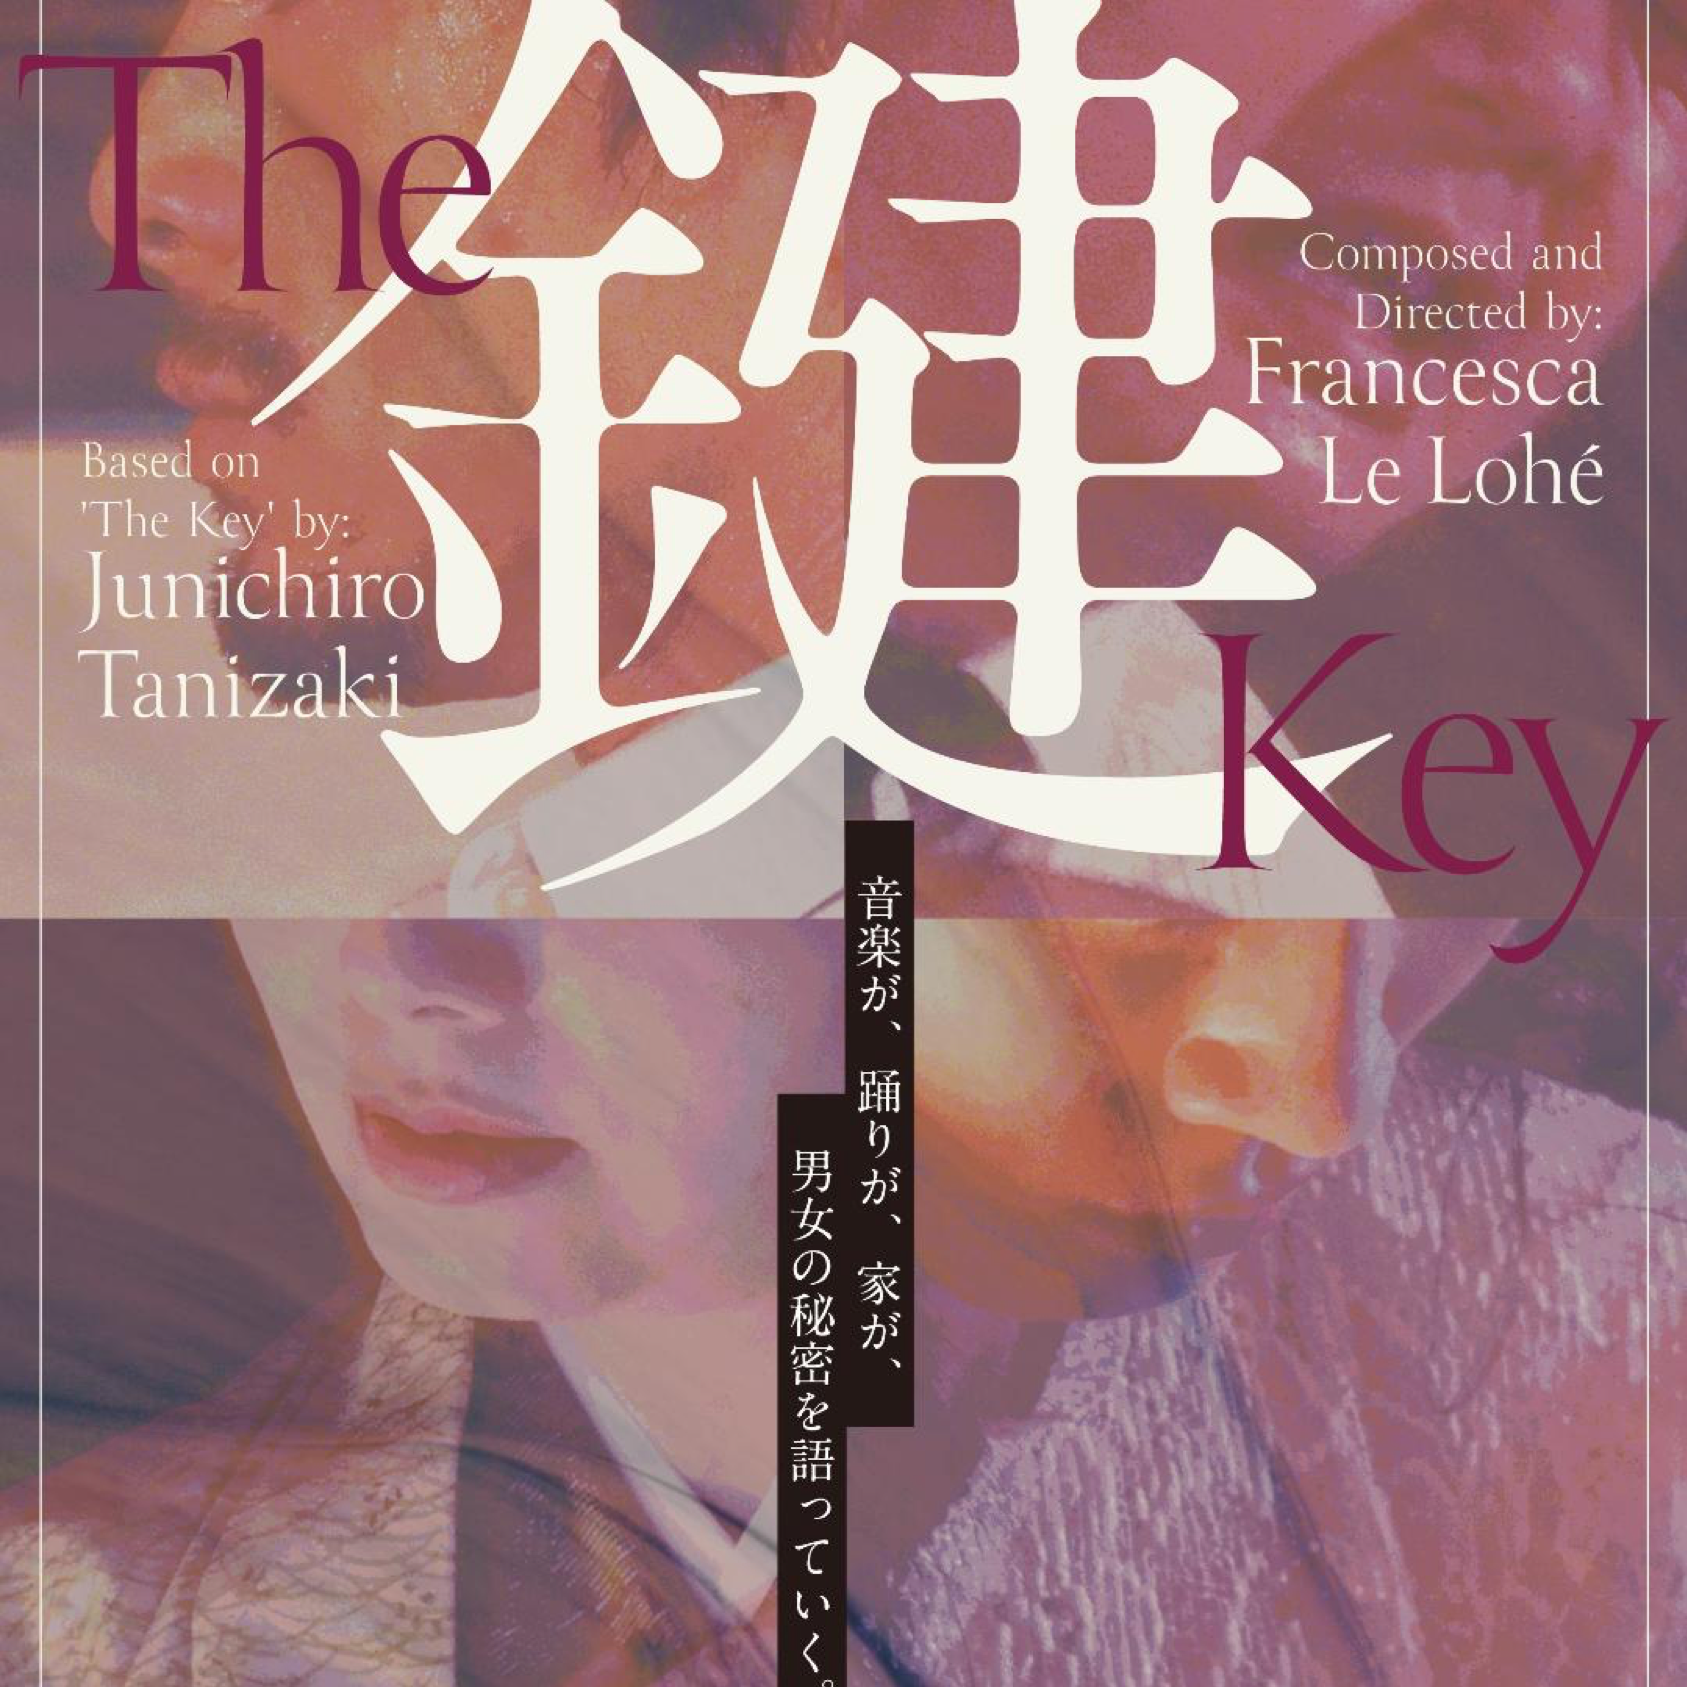 THE鍵KEY is a site-specific, Anglo-Japanese, dramatic musical work inspired by Junichiro Tanizaki's 'The Key' (1956) by composerFrancesca Le Lohé -